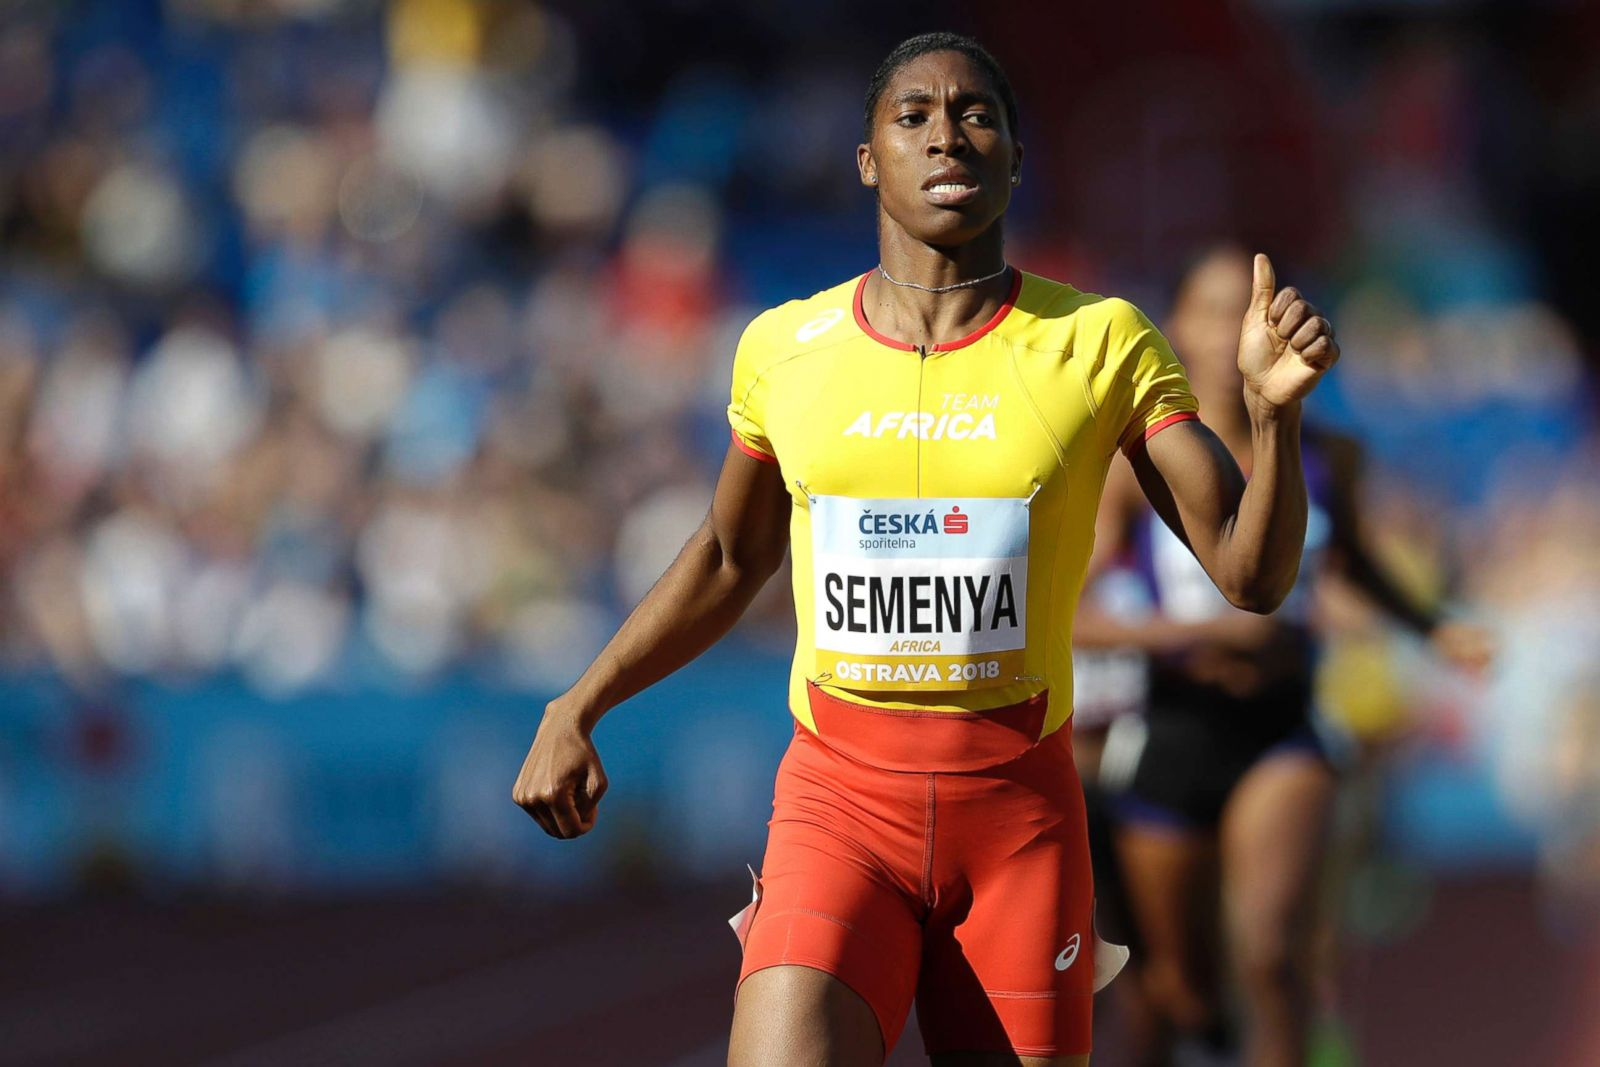 cee2249d67a48 Female track star Caster Semenya in court to challenge gender ruling in  landmark case on testosterone levels - ABC News